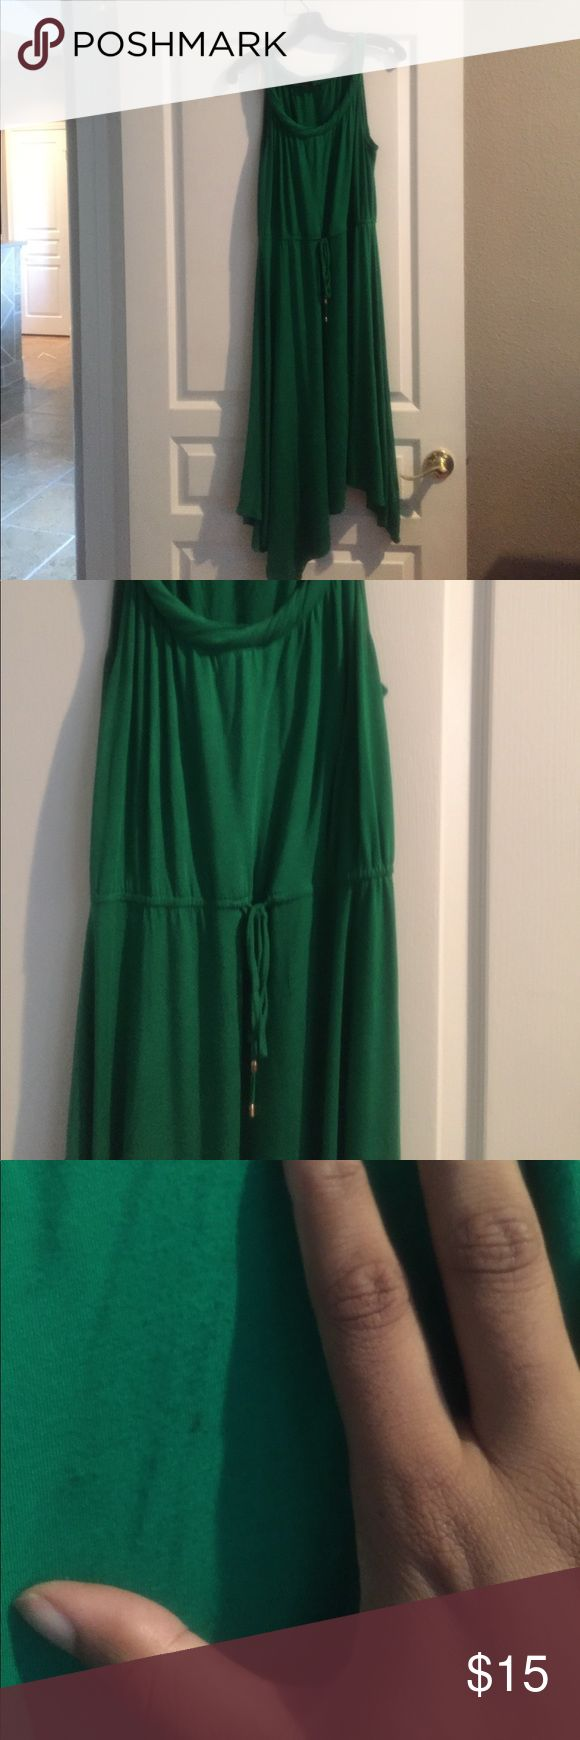 Kelly Green Asymmetrical Dress Super cute and flattering asymmetrical dress with drawstring waist to cinch. Small stain (pictured) but I didn't notice it until I inspected Dress before posting. Reflected in price. You will love this one! Cable & Gauge Dresses Asymmetrical